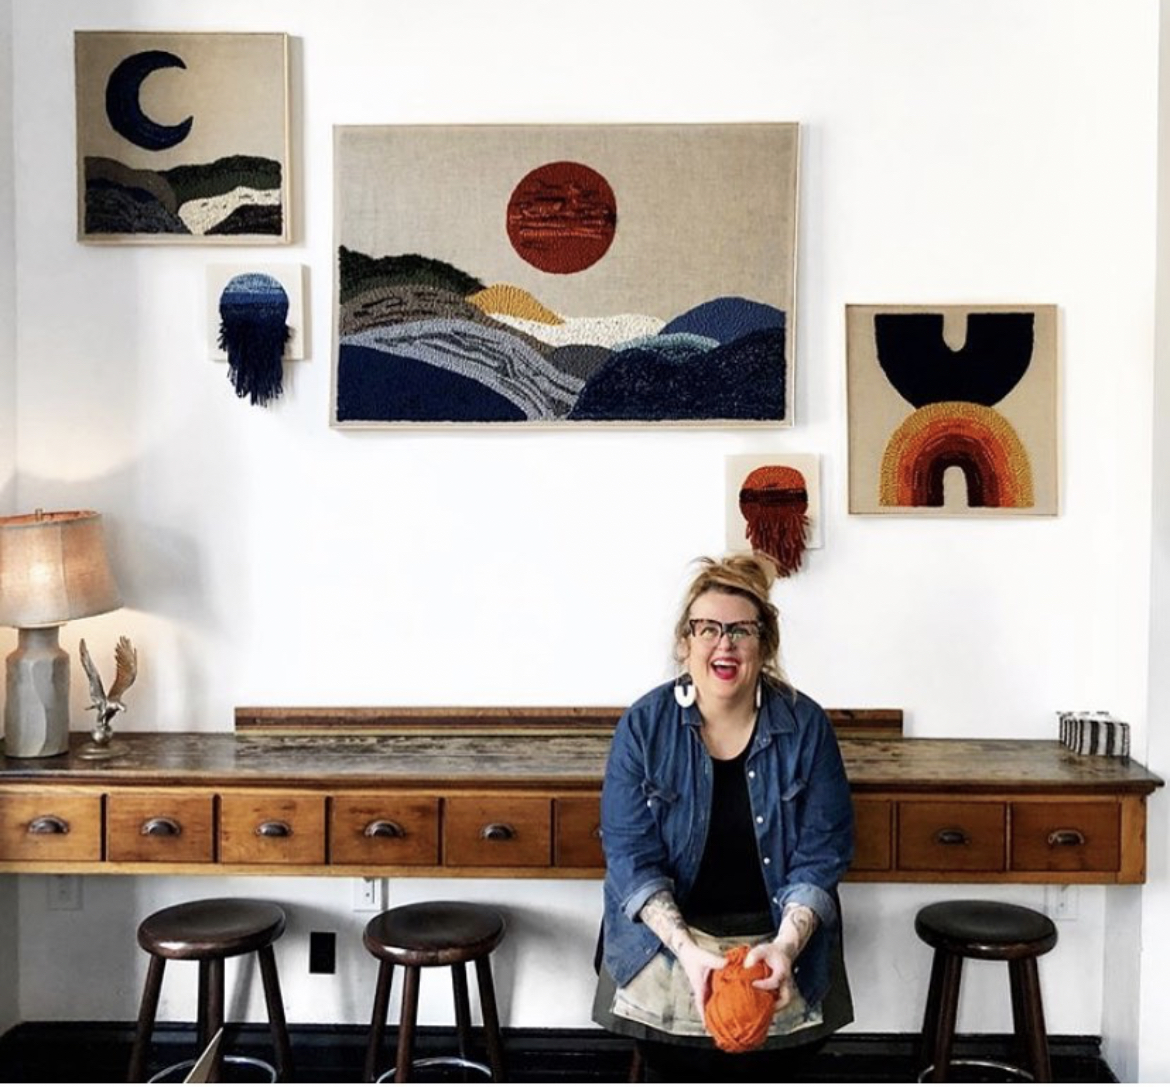 Image of Kelly Malone in her Studio